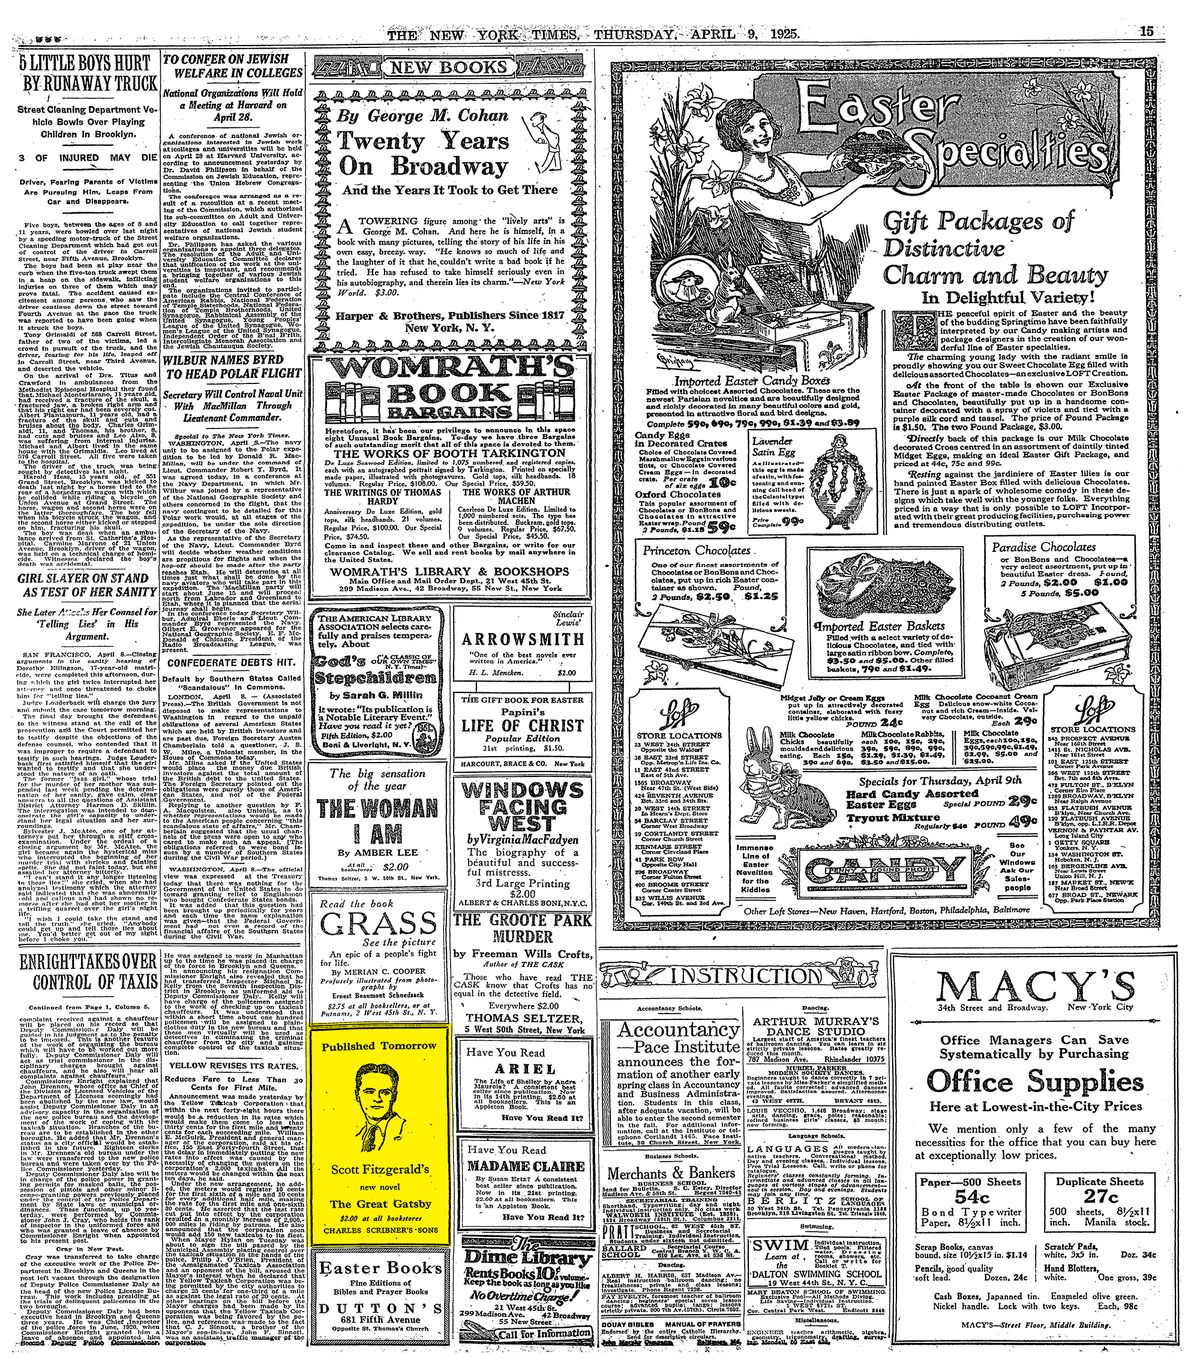 The full page on April 9, 1925.